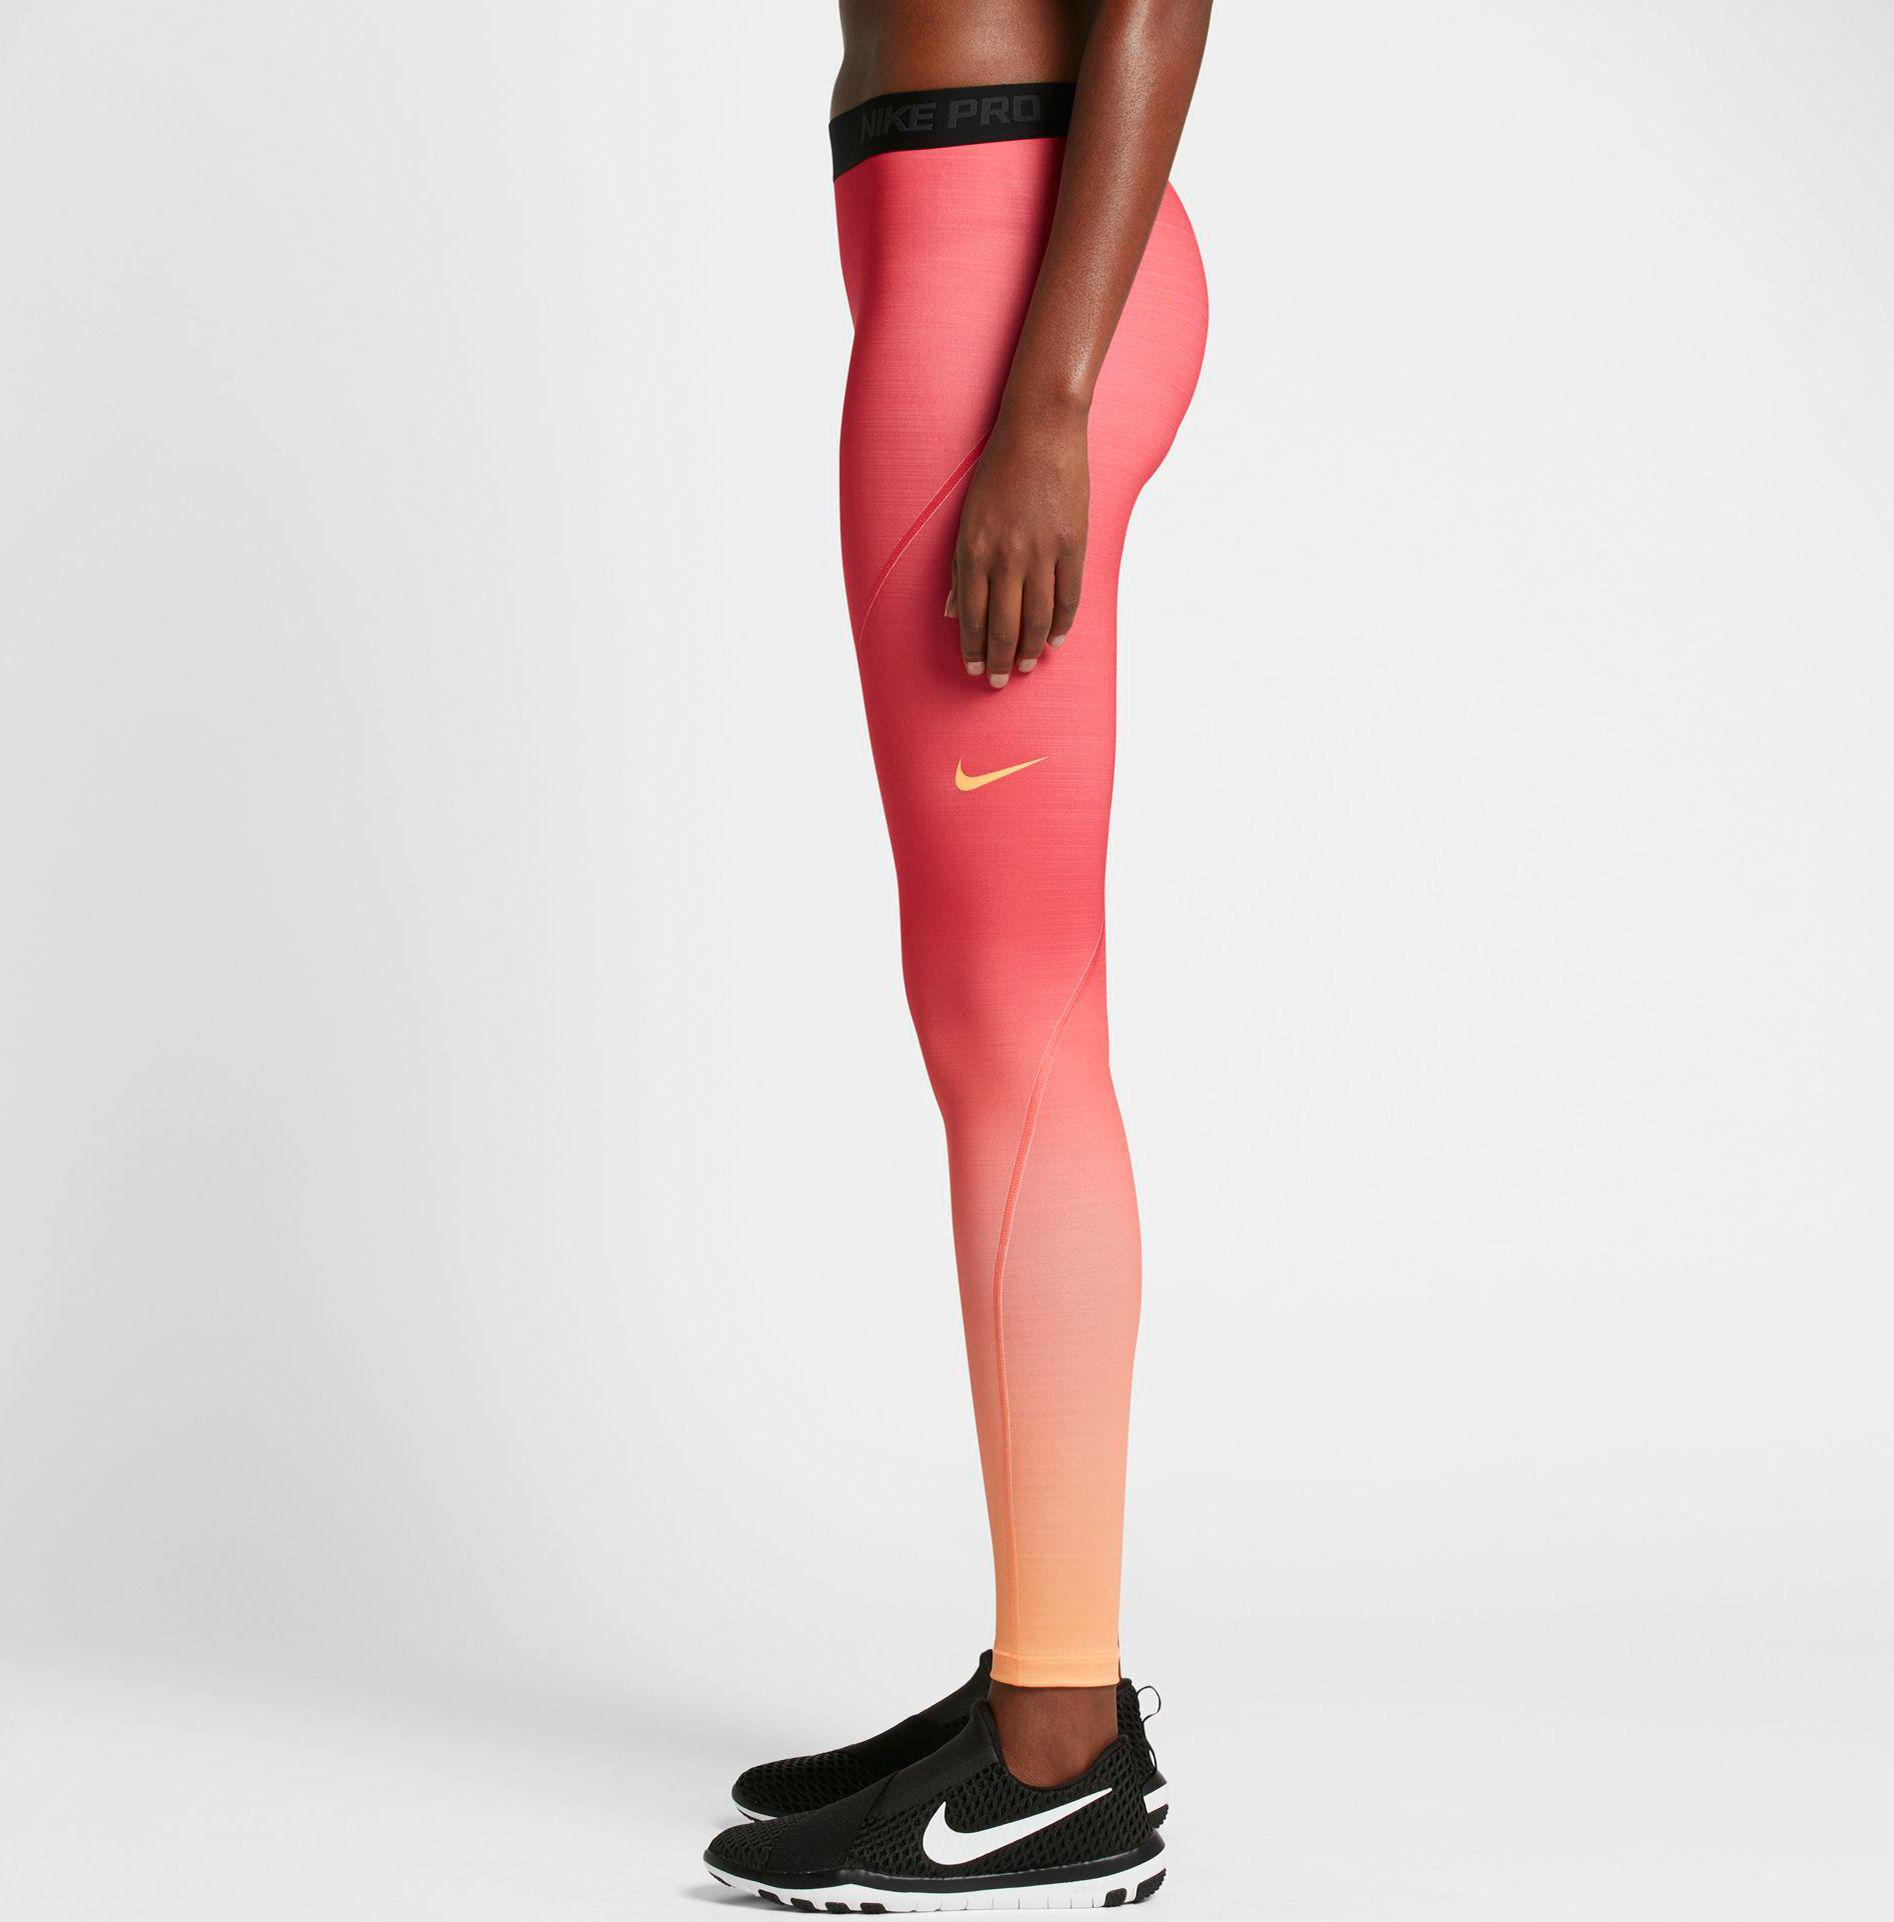 1137706c0c0aa8 Nike Pro Hyperwarm Fade Printed Tights in Red - Lyst